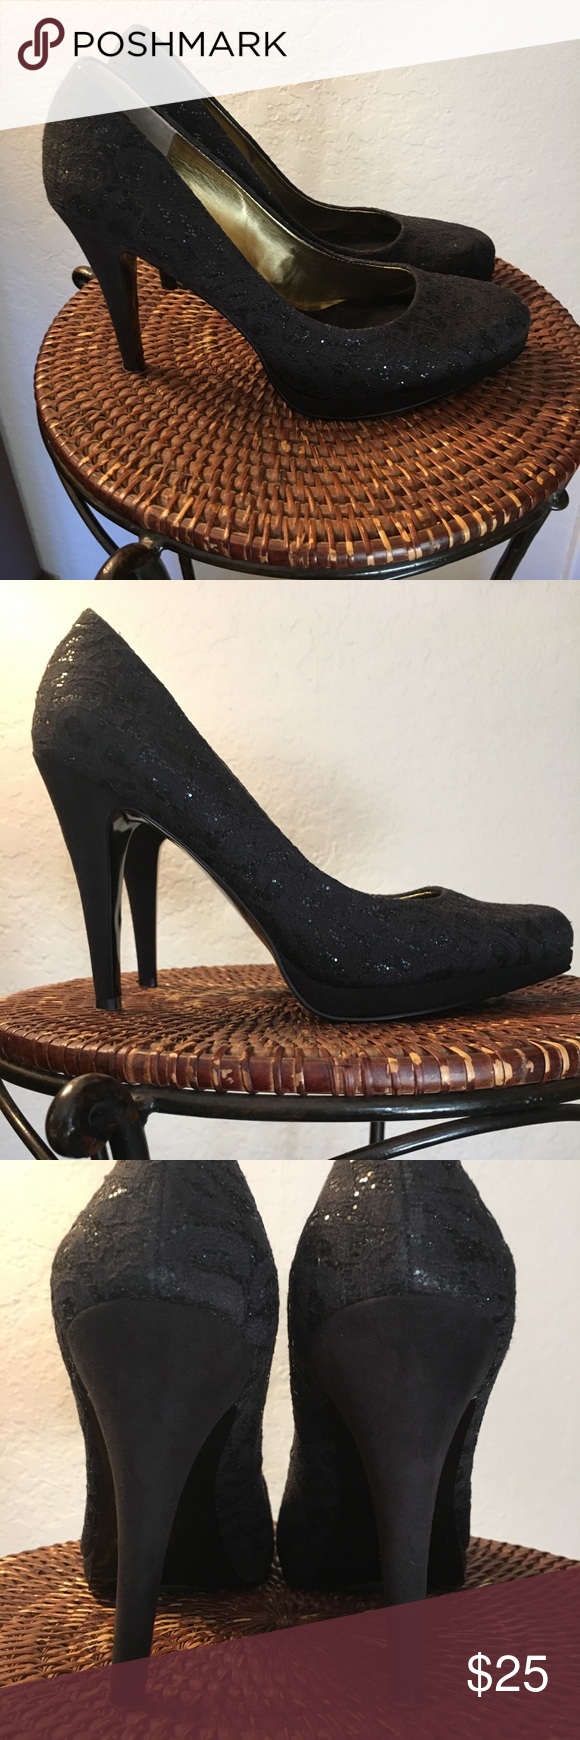 ❗️🔻EUC Nine West Black Glitter Pumps🔻❗️ ❗️🔻Final Price Drop❗️FIRM❗️Nine West Black Lace & sequin pumps.  Worn once for my daughters prom.  Excellent condition.  Size 8M/4.5 inch heal height Nine West Shoes Heels